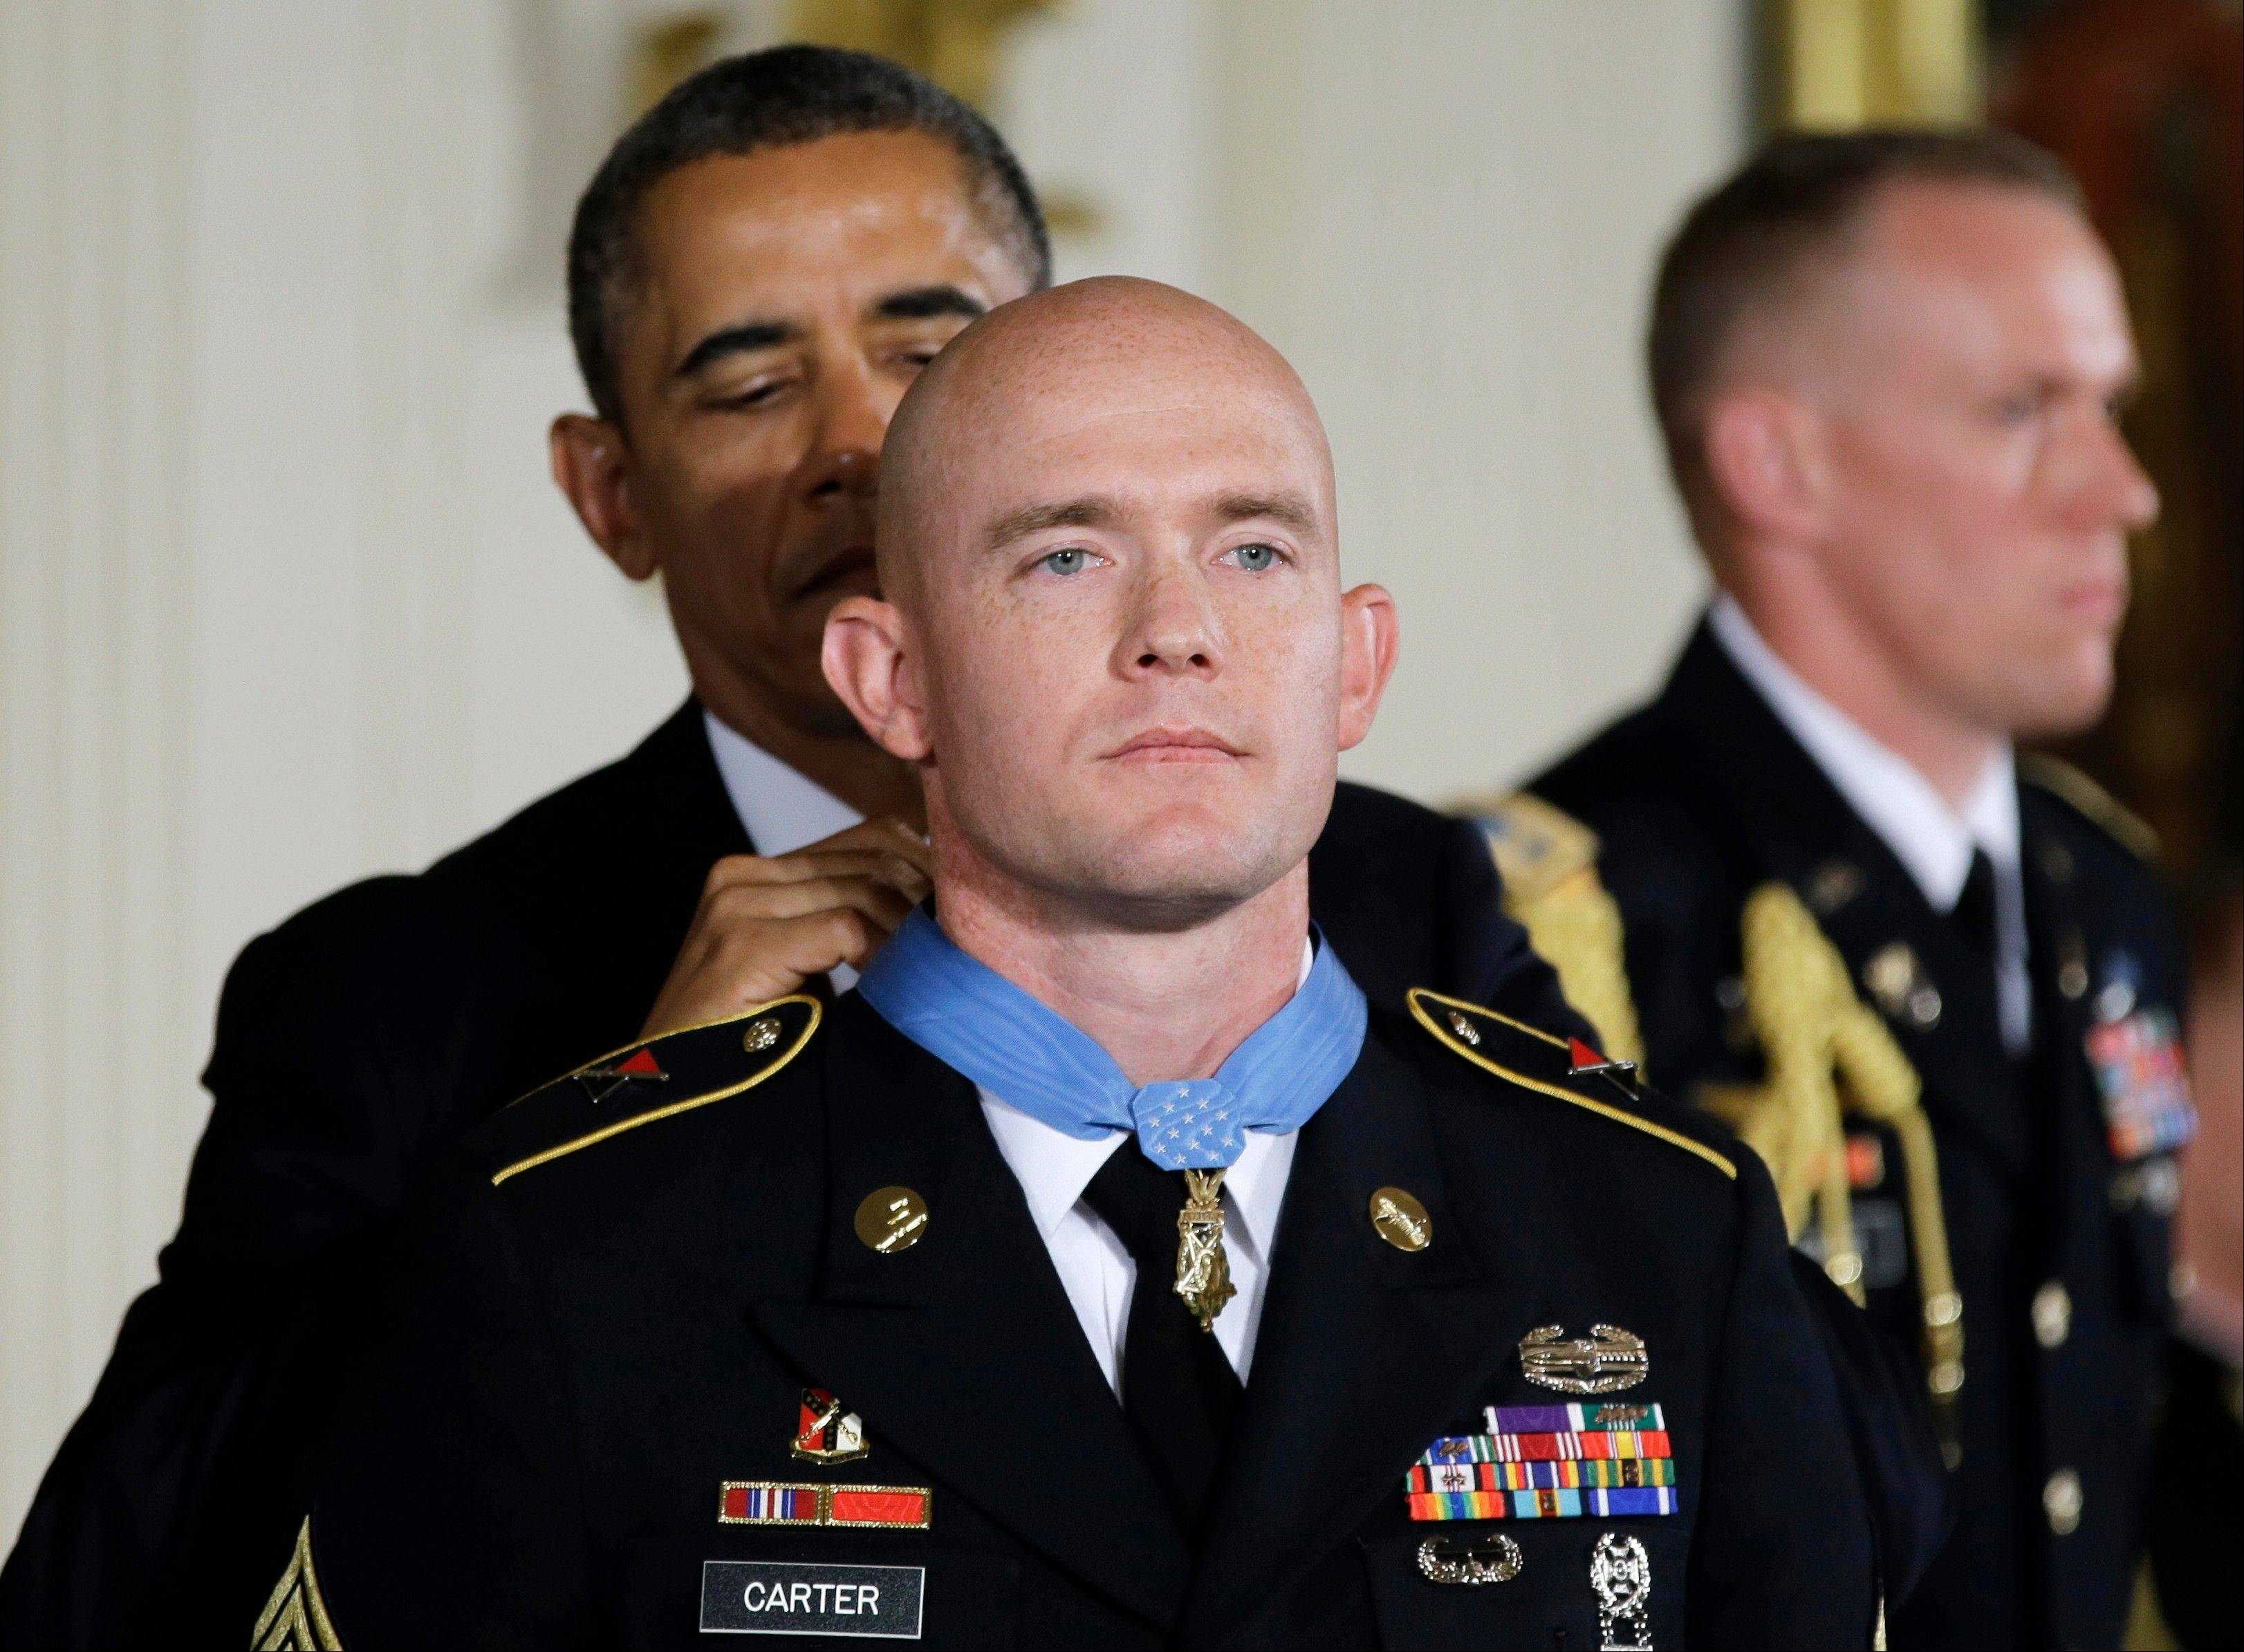 President Barack Obama awards U.S. Army Staff Sgt. Ty M. Carter the Medal of Honor for conspicuous gallantry Monday, during a ceremony in the East Room of the White House in Washington.